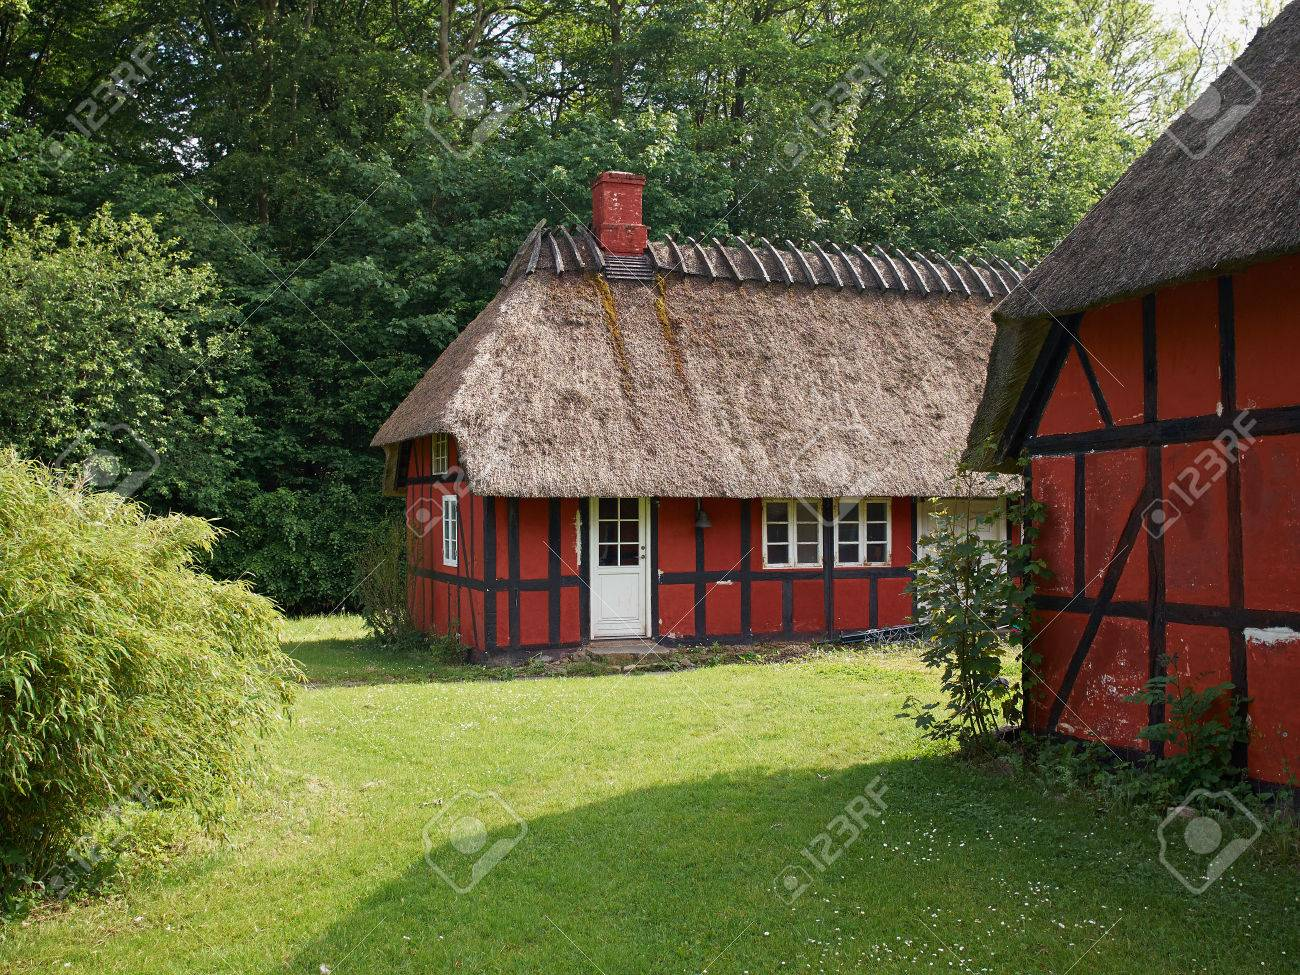 Traditional Vintage Country Style Halftimbered Thatched Roof - Vintage country house